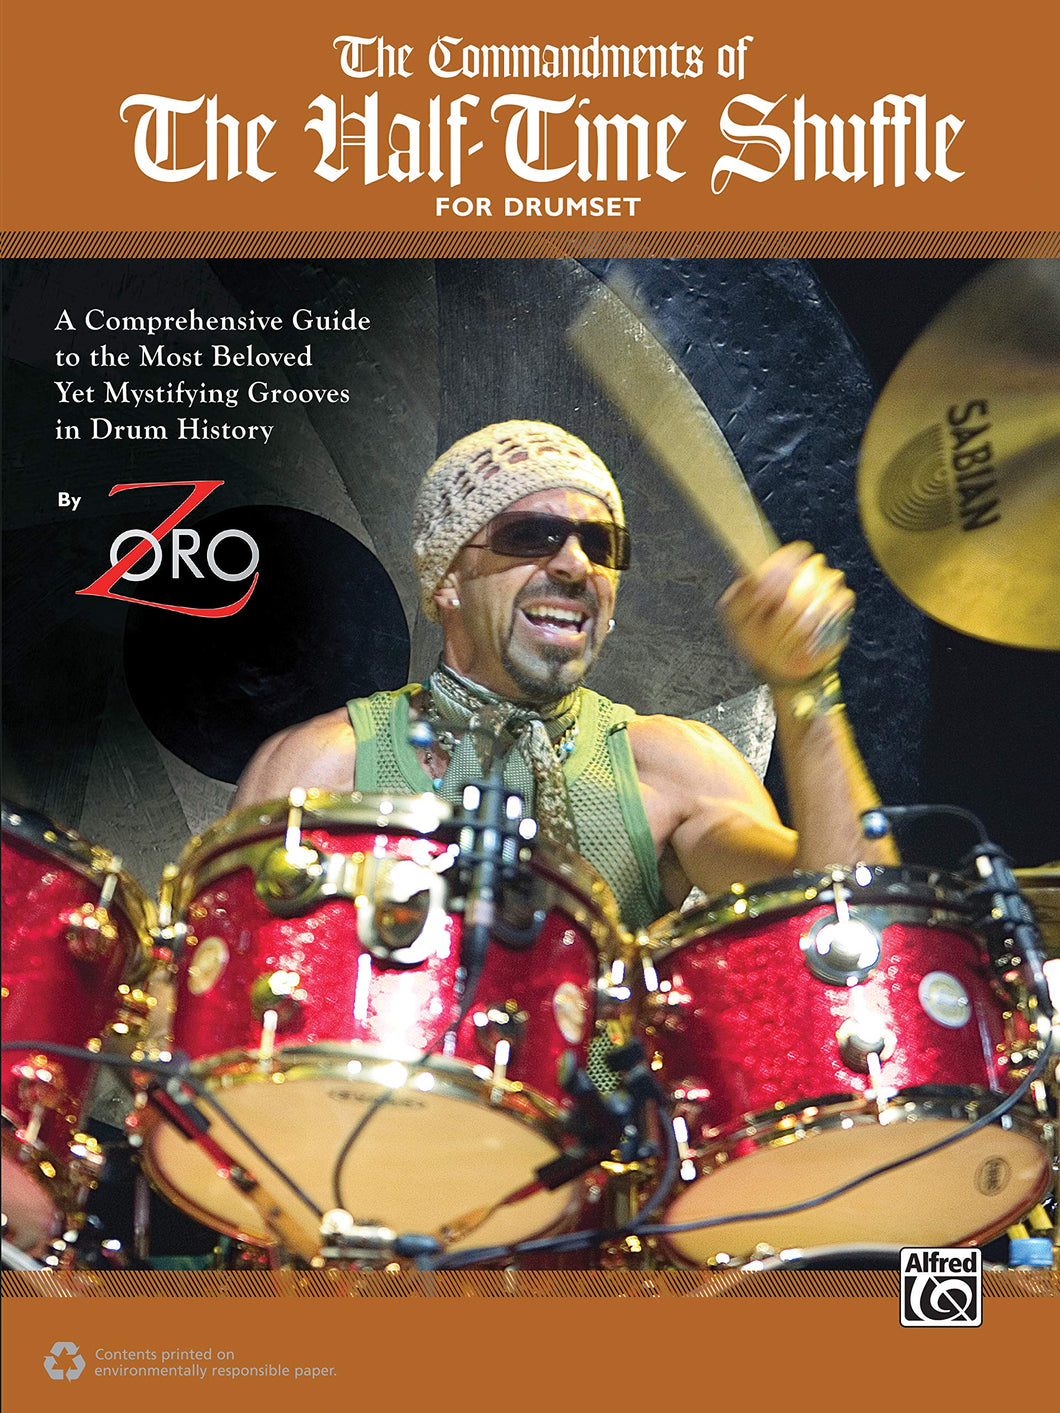 For Your  Love - Stevie Wonder - Collection of Drum Transcriptions / Drum Sheet Music - Alfred Music TCOHTS